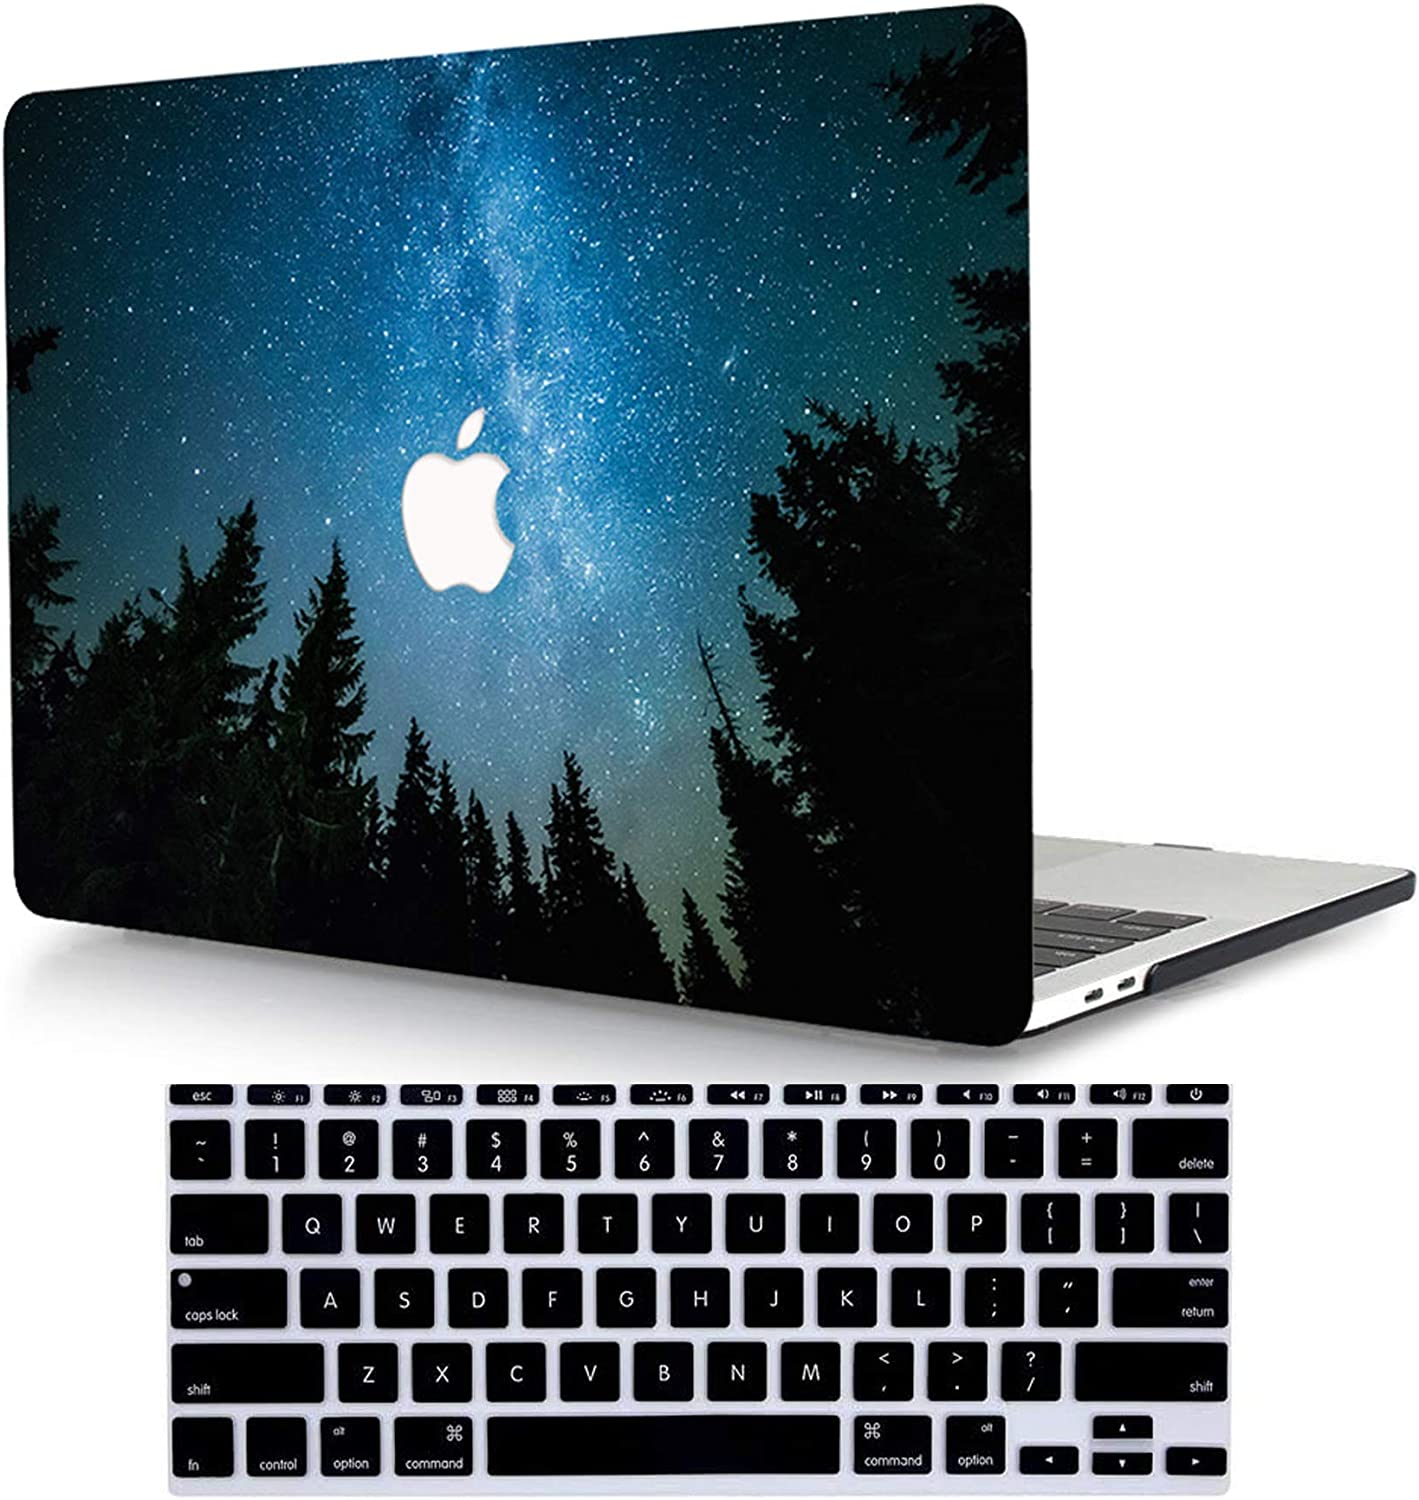 ACJYX Case Compatible with MacBook Pro 15 inch with Retina Display (Model A1398, Older Version 2015 2014 2013 end 2012 Release), Plastic Hard Shell Case & Keyboard Cover Skin, Blue Starry Sky 1